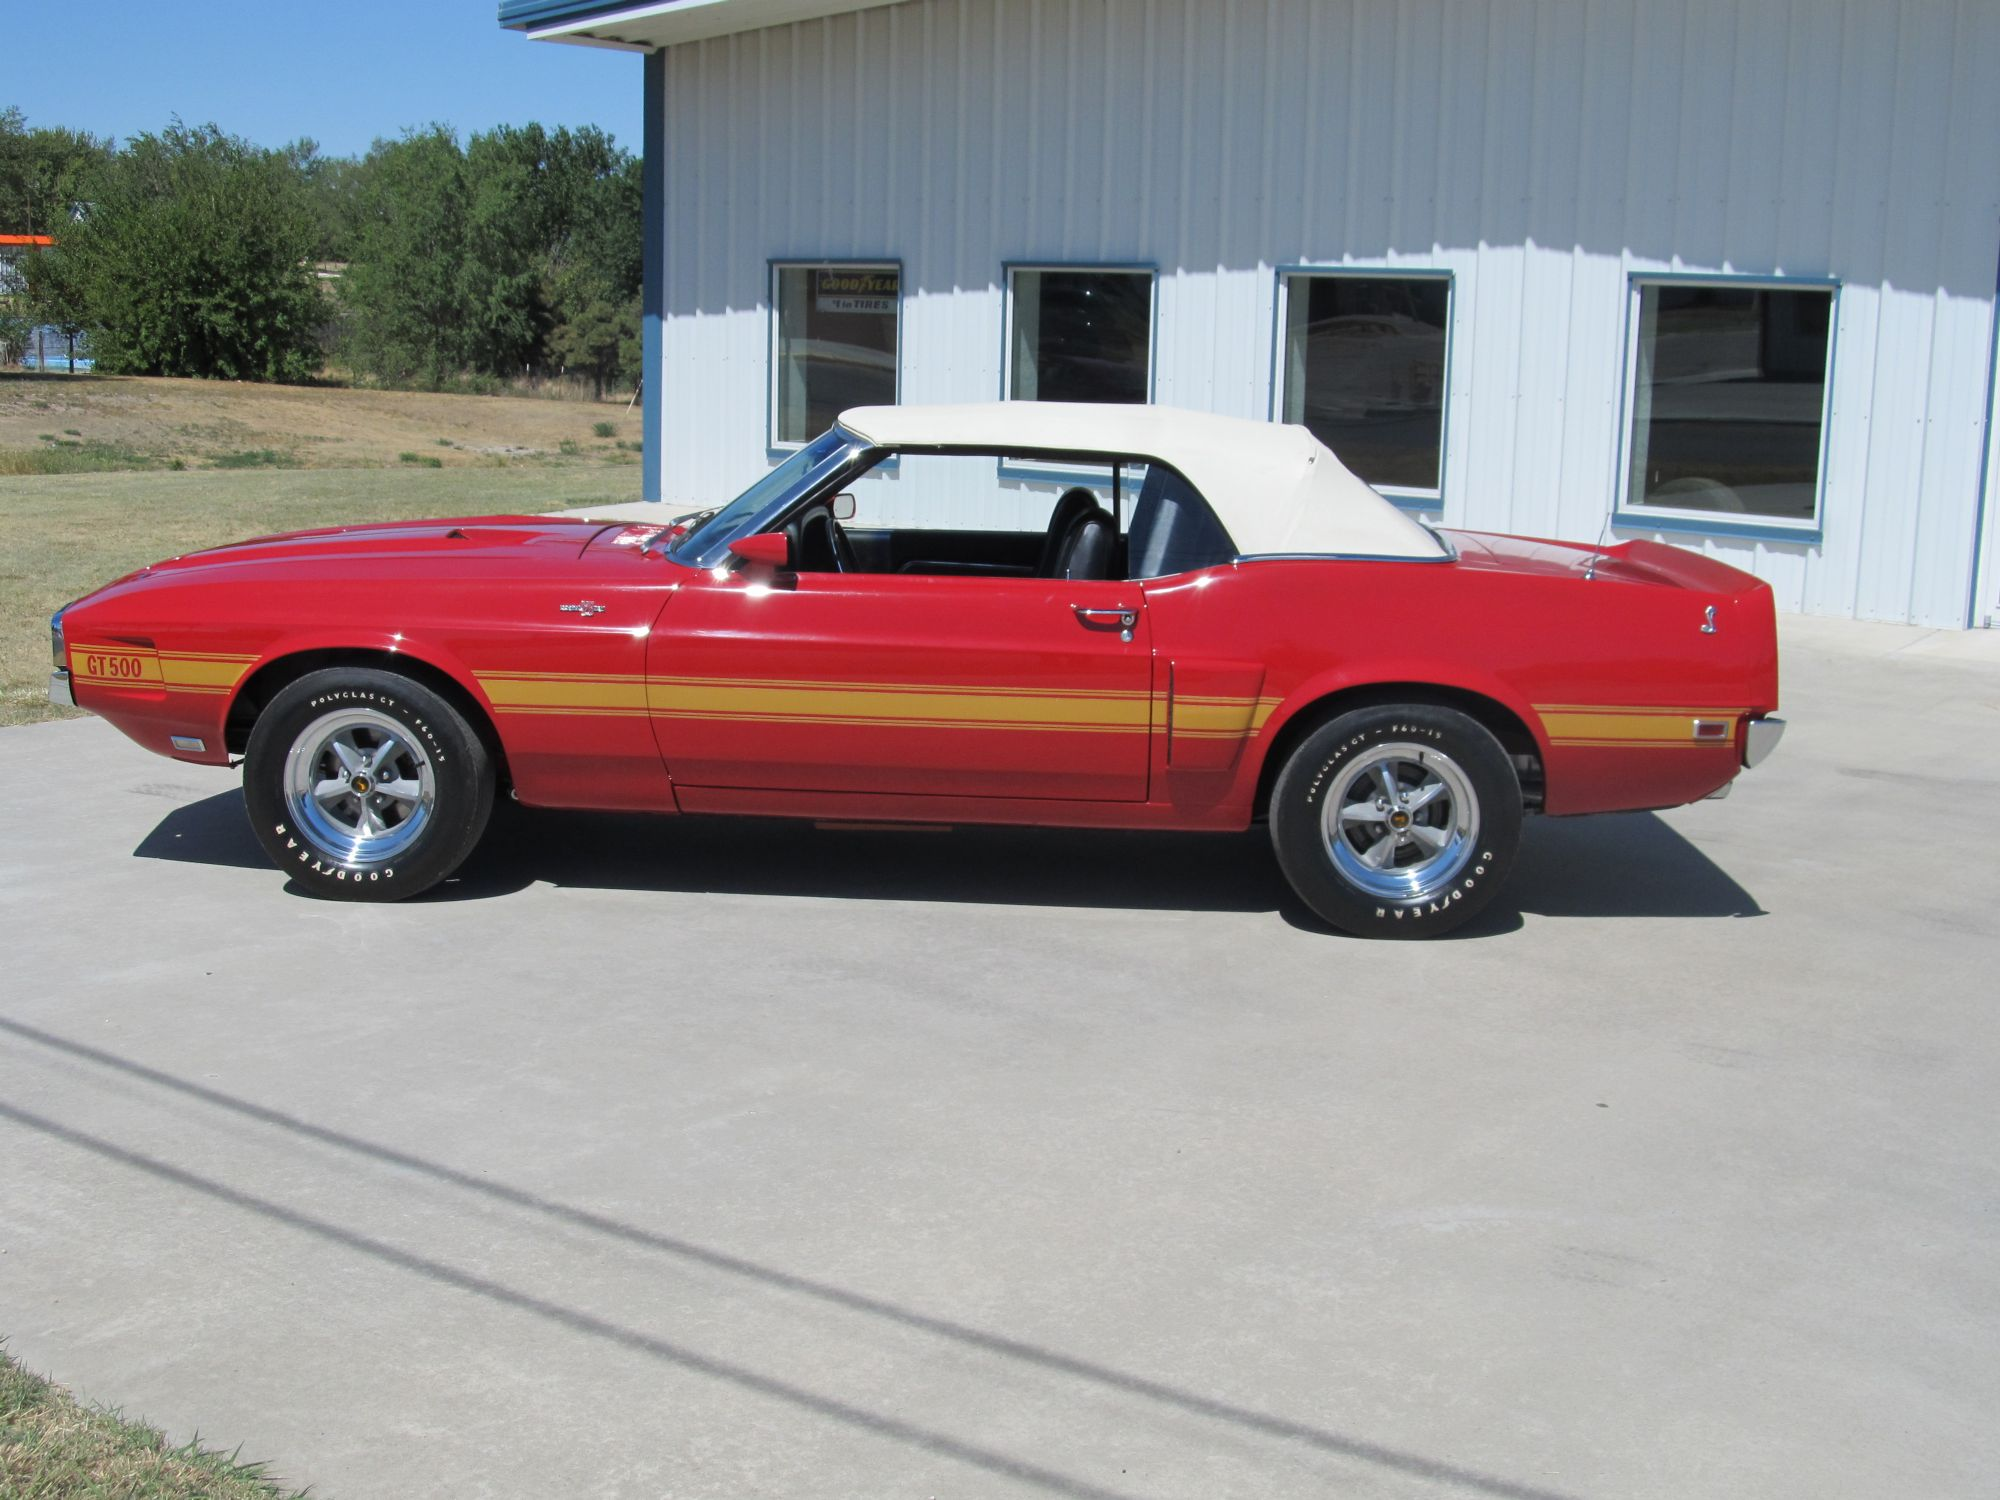 1969 Ford Mustang Shelby Gt500 Convertible For Sale 4 25